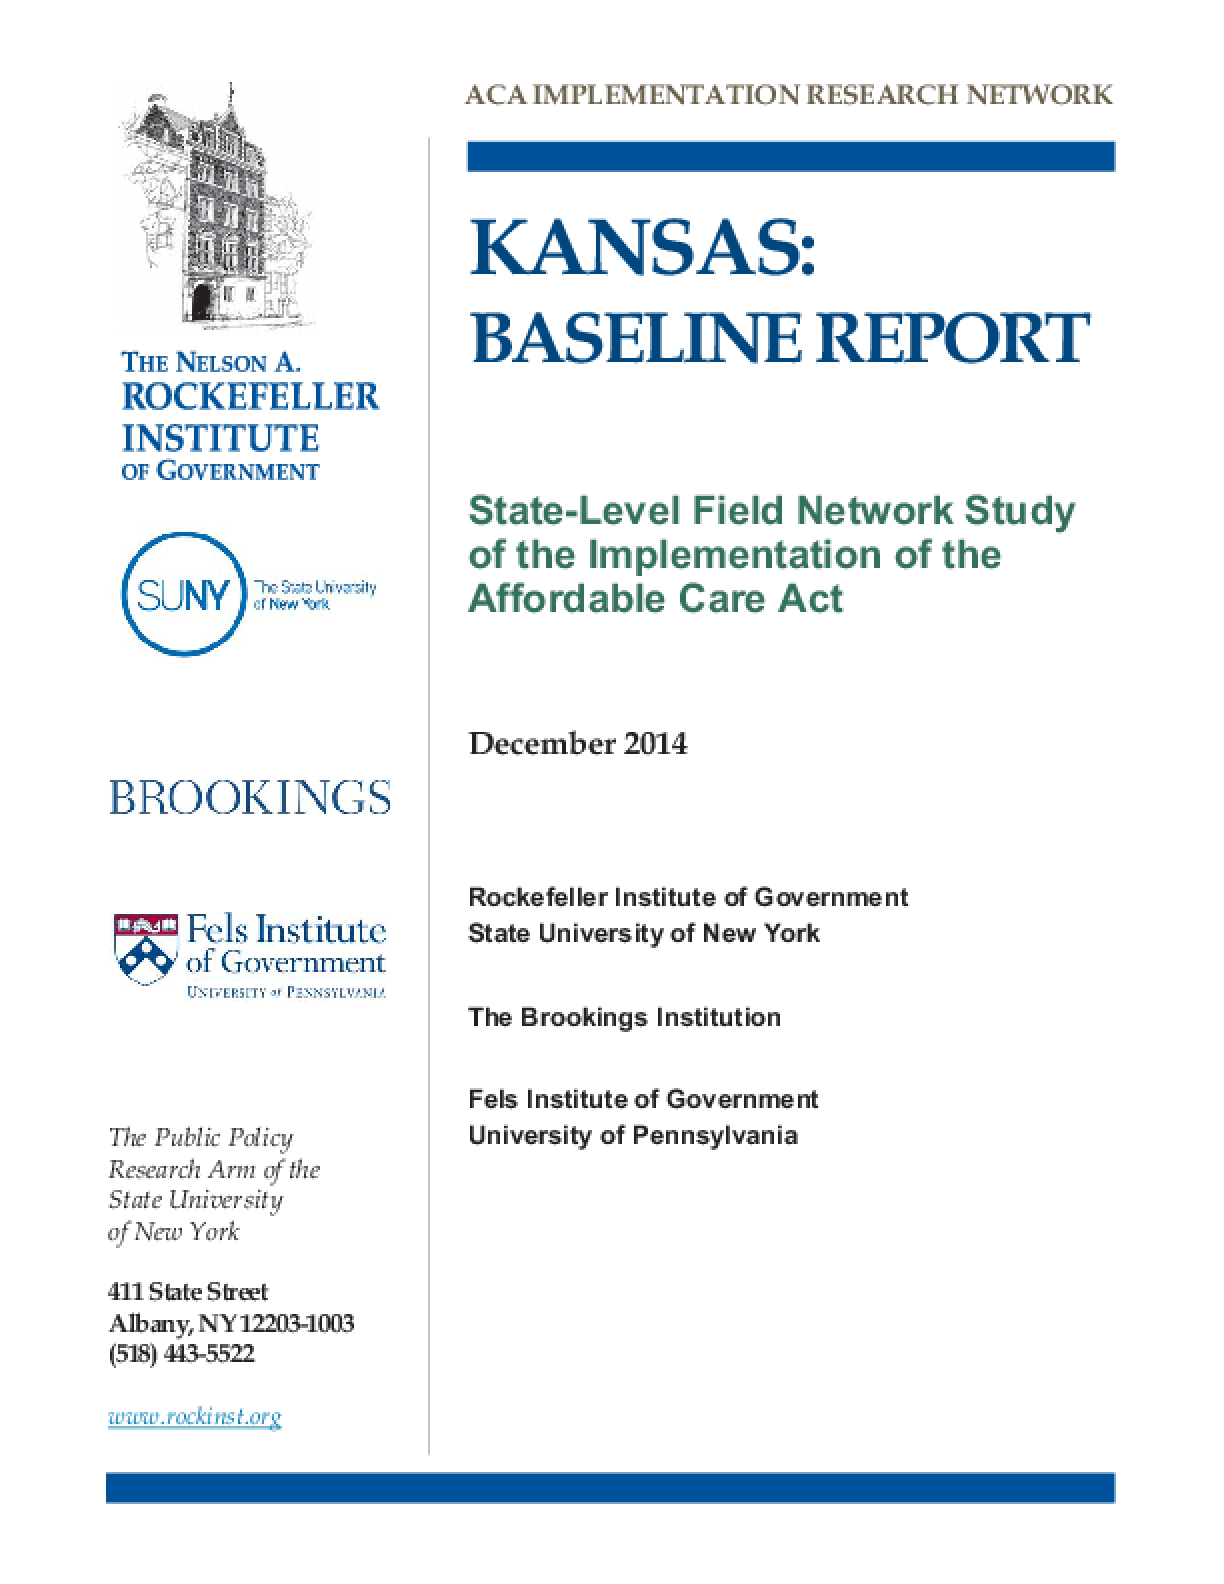 Kansas: Baseline Report - State Level Field Network Study of the Implementation of the Affordable Care Act